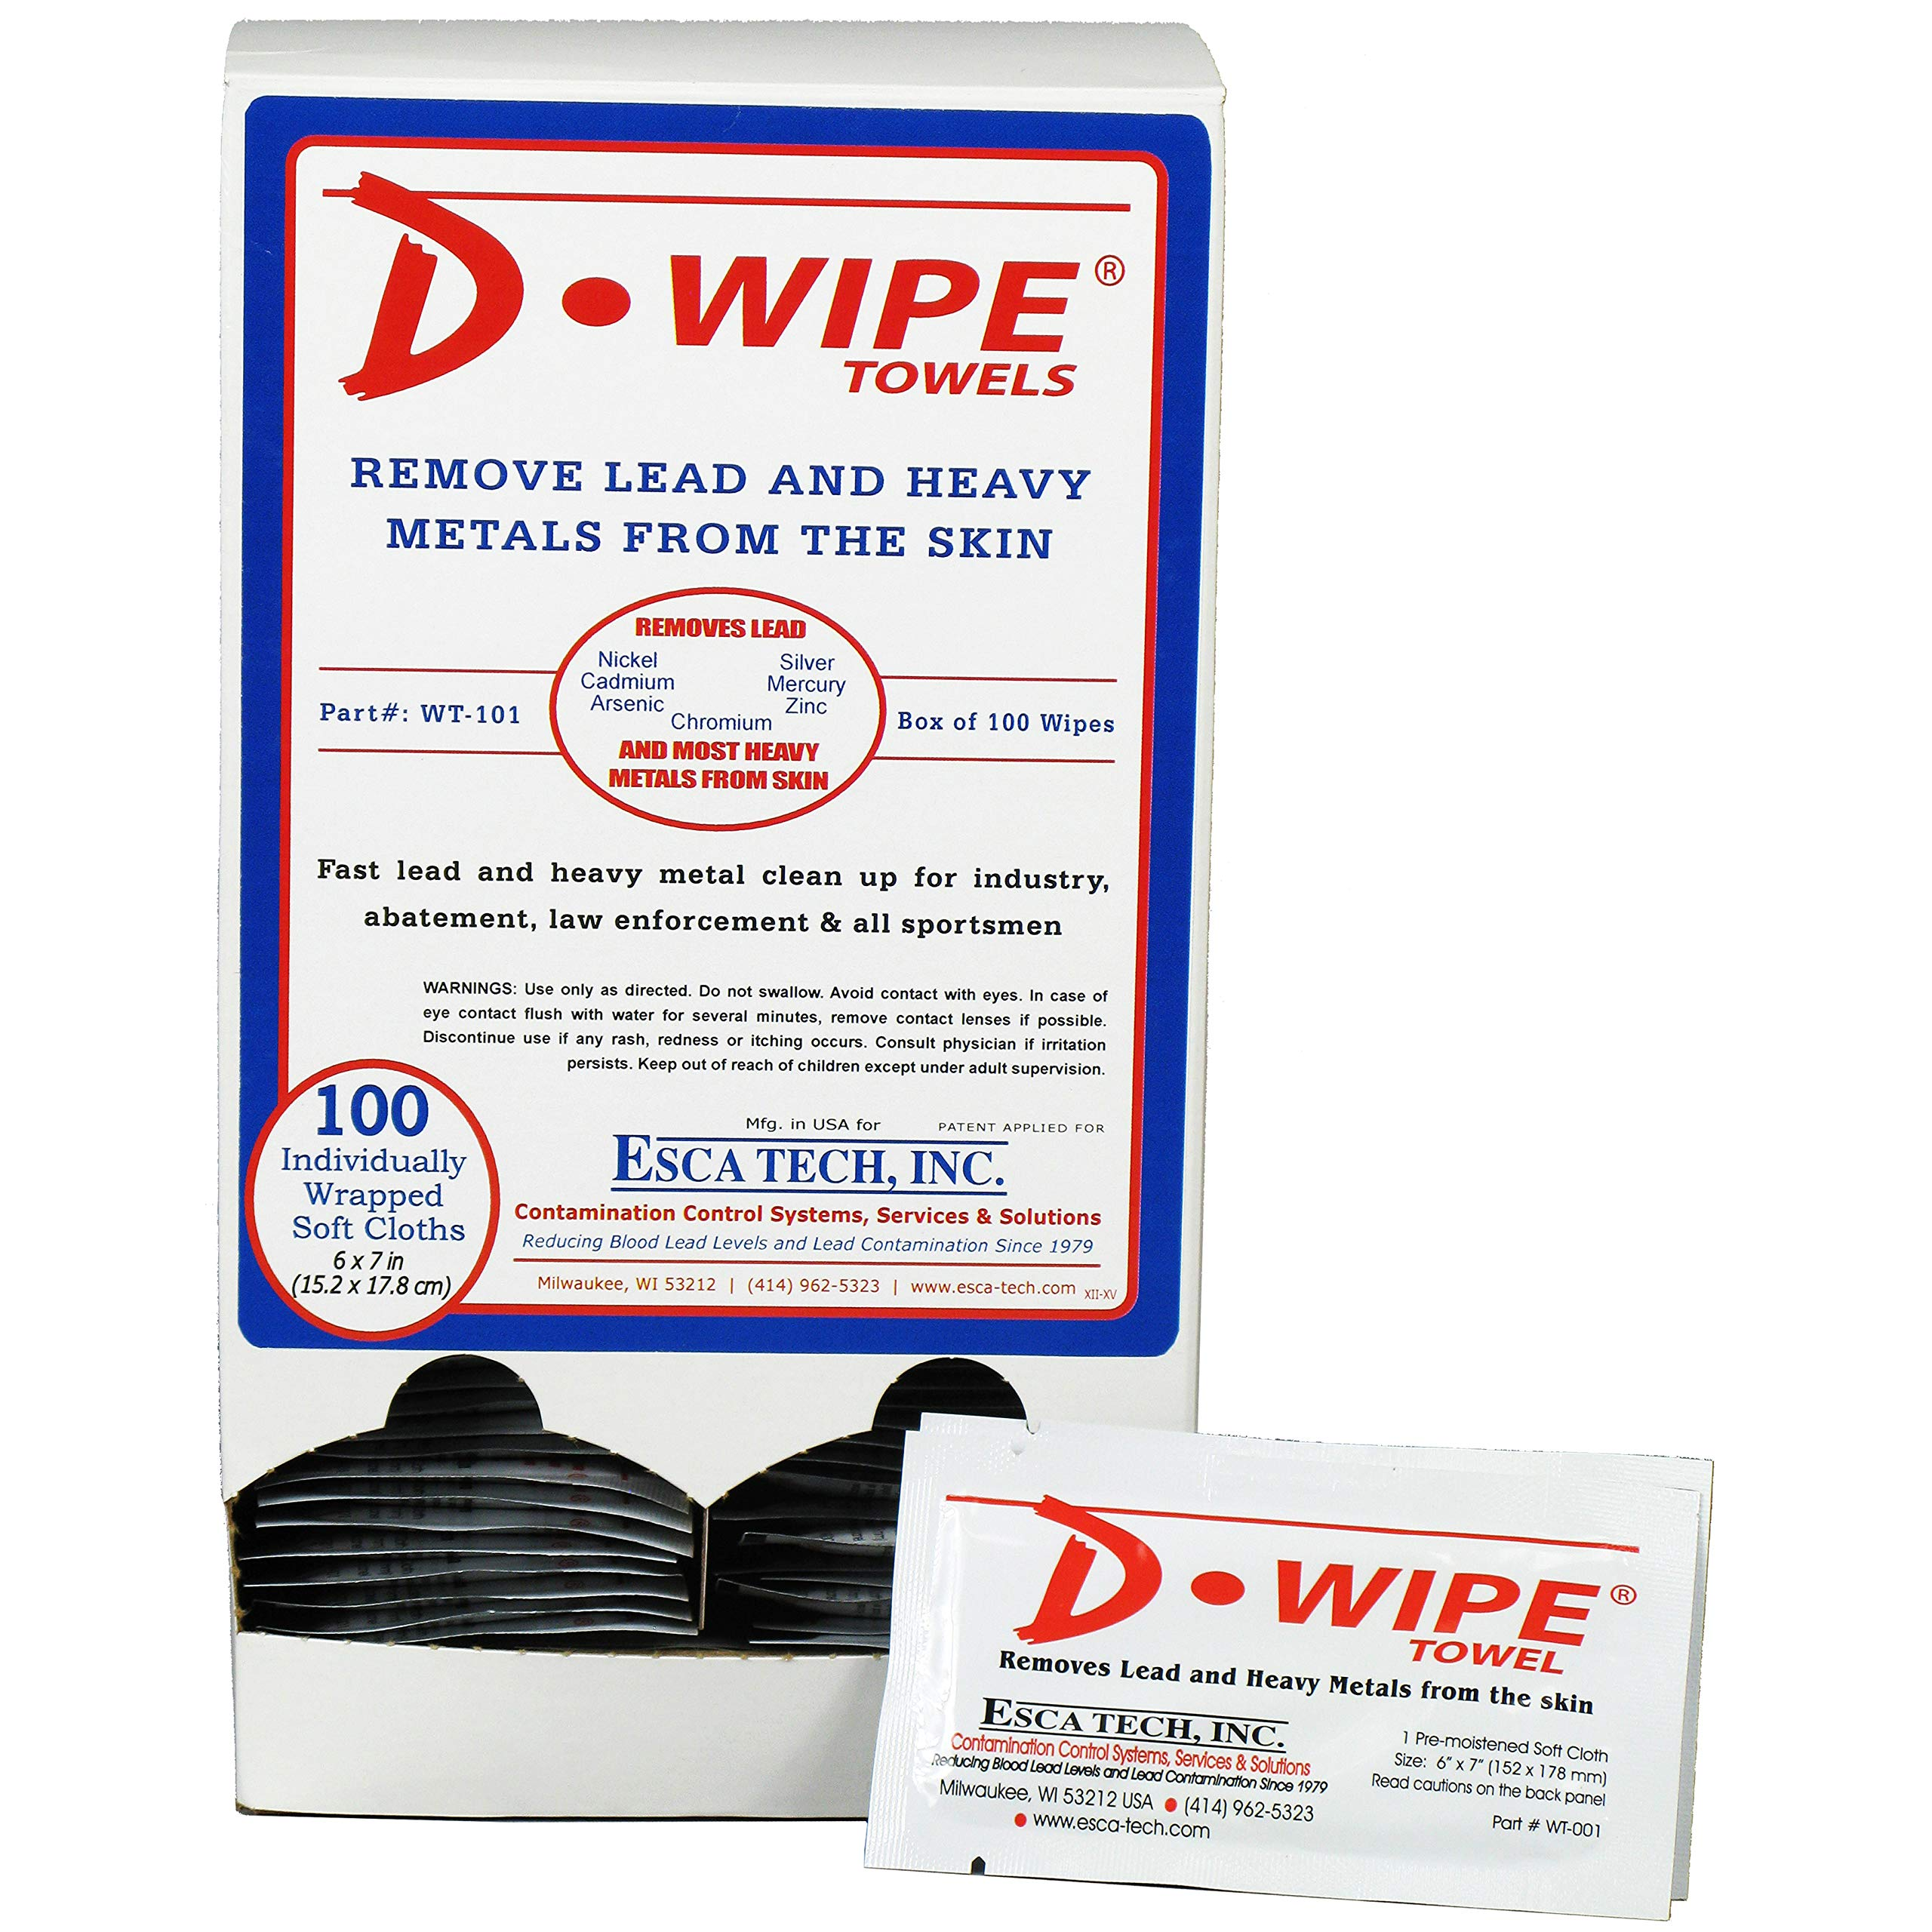 D-Wipe Towels by D-Lead, Dispenser with 100 Individually Wrapped Towels